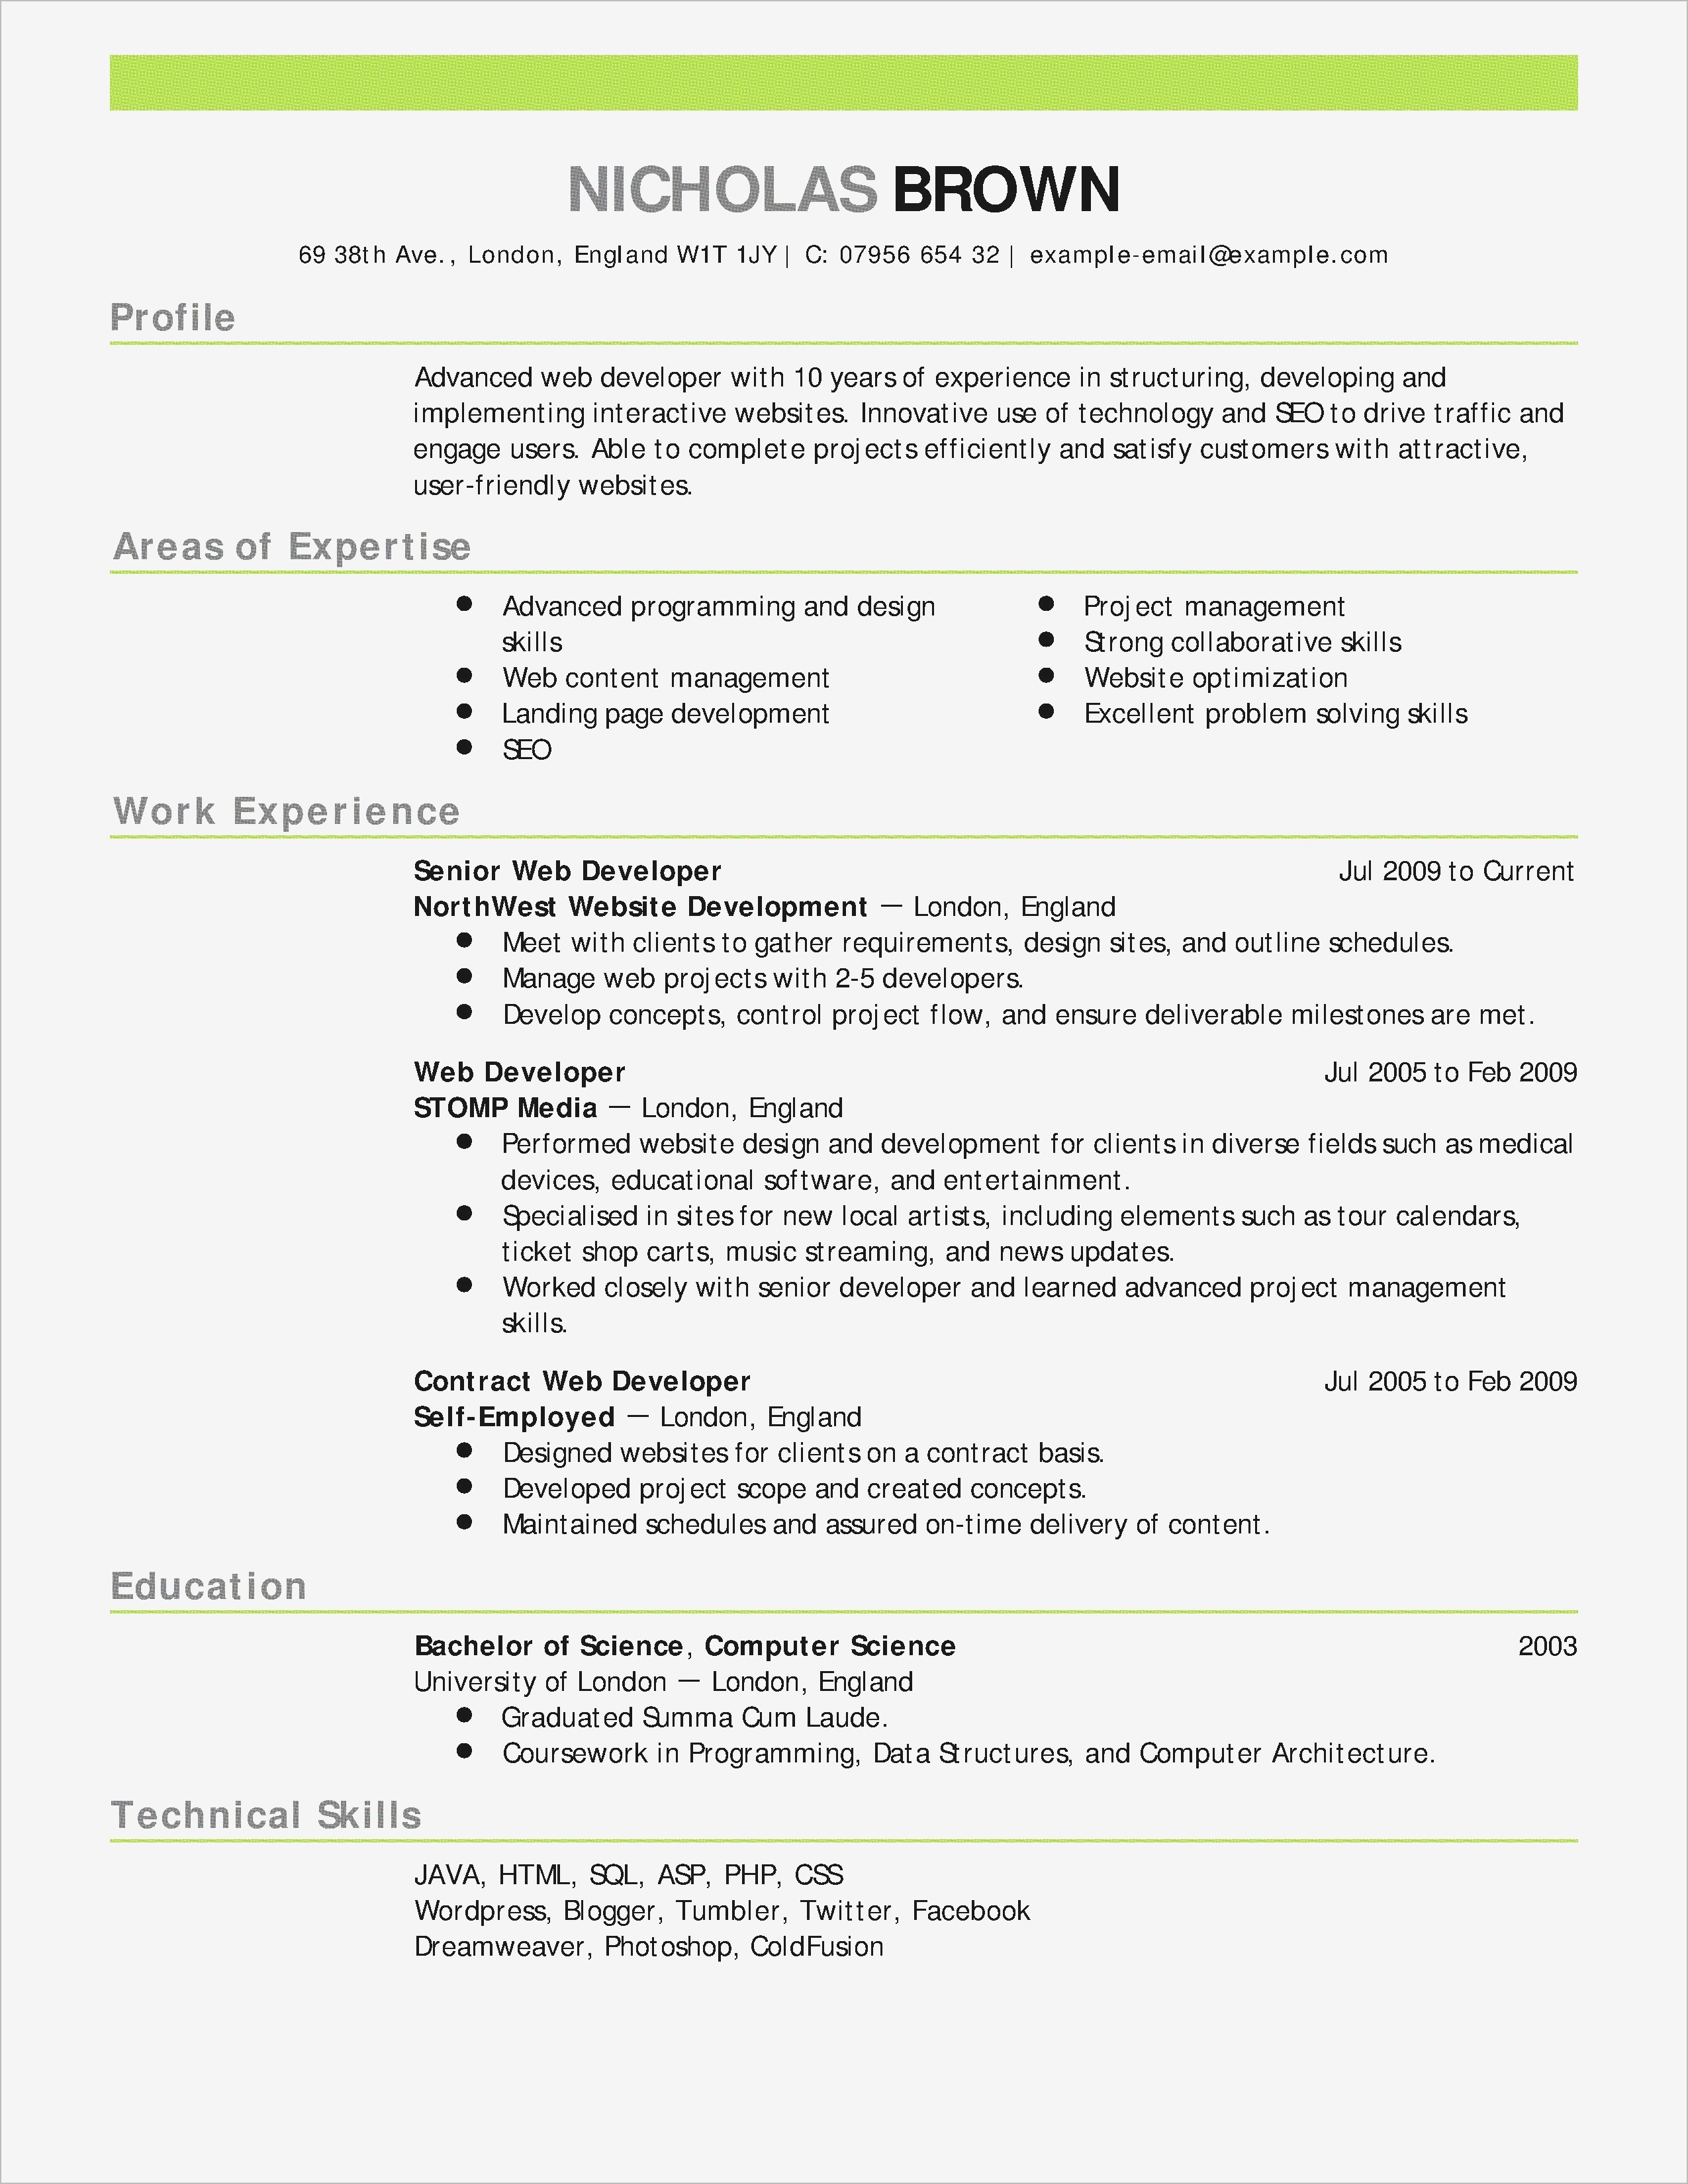 Reference Page for Resume - Professional Reference List Template – Resumes for Teens Templates